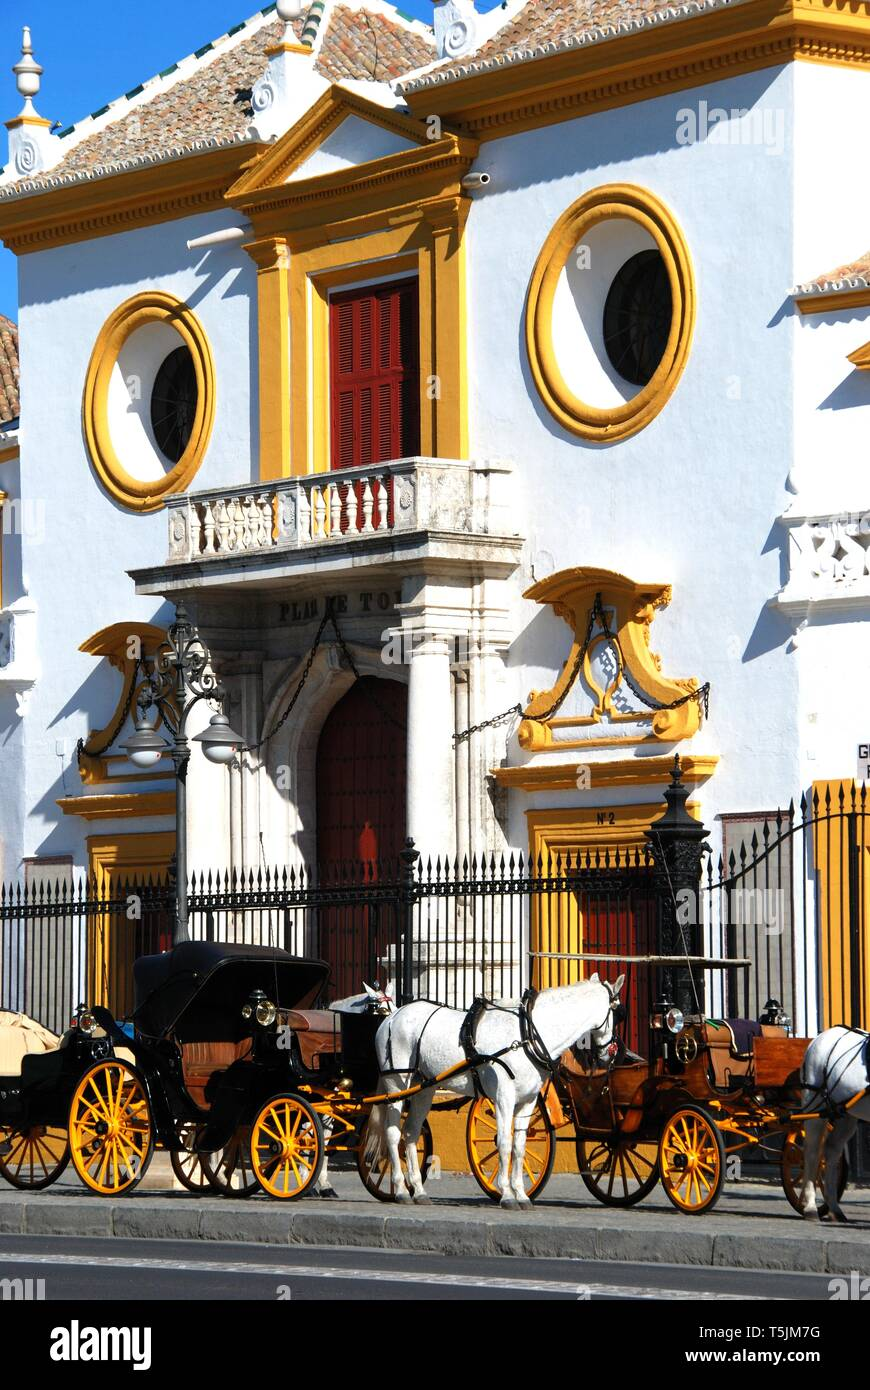 View of the bullring with horse drawn carriages in the foreground, Seville, Seville Province, Andalusia, Spain, Europe. - Stock Image